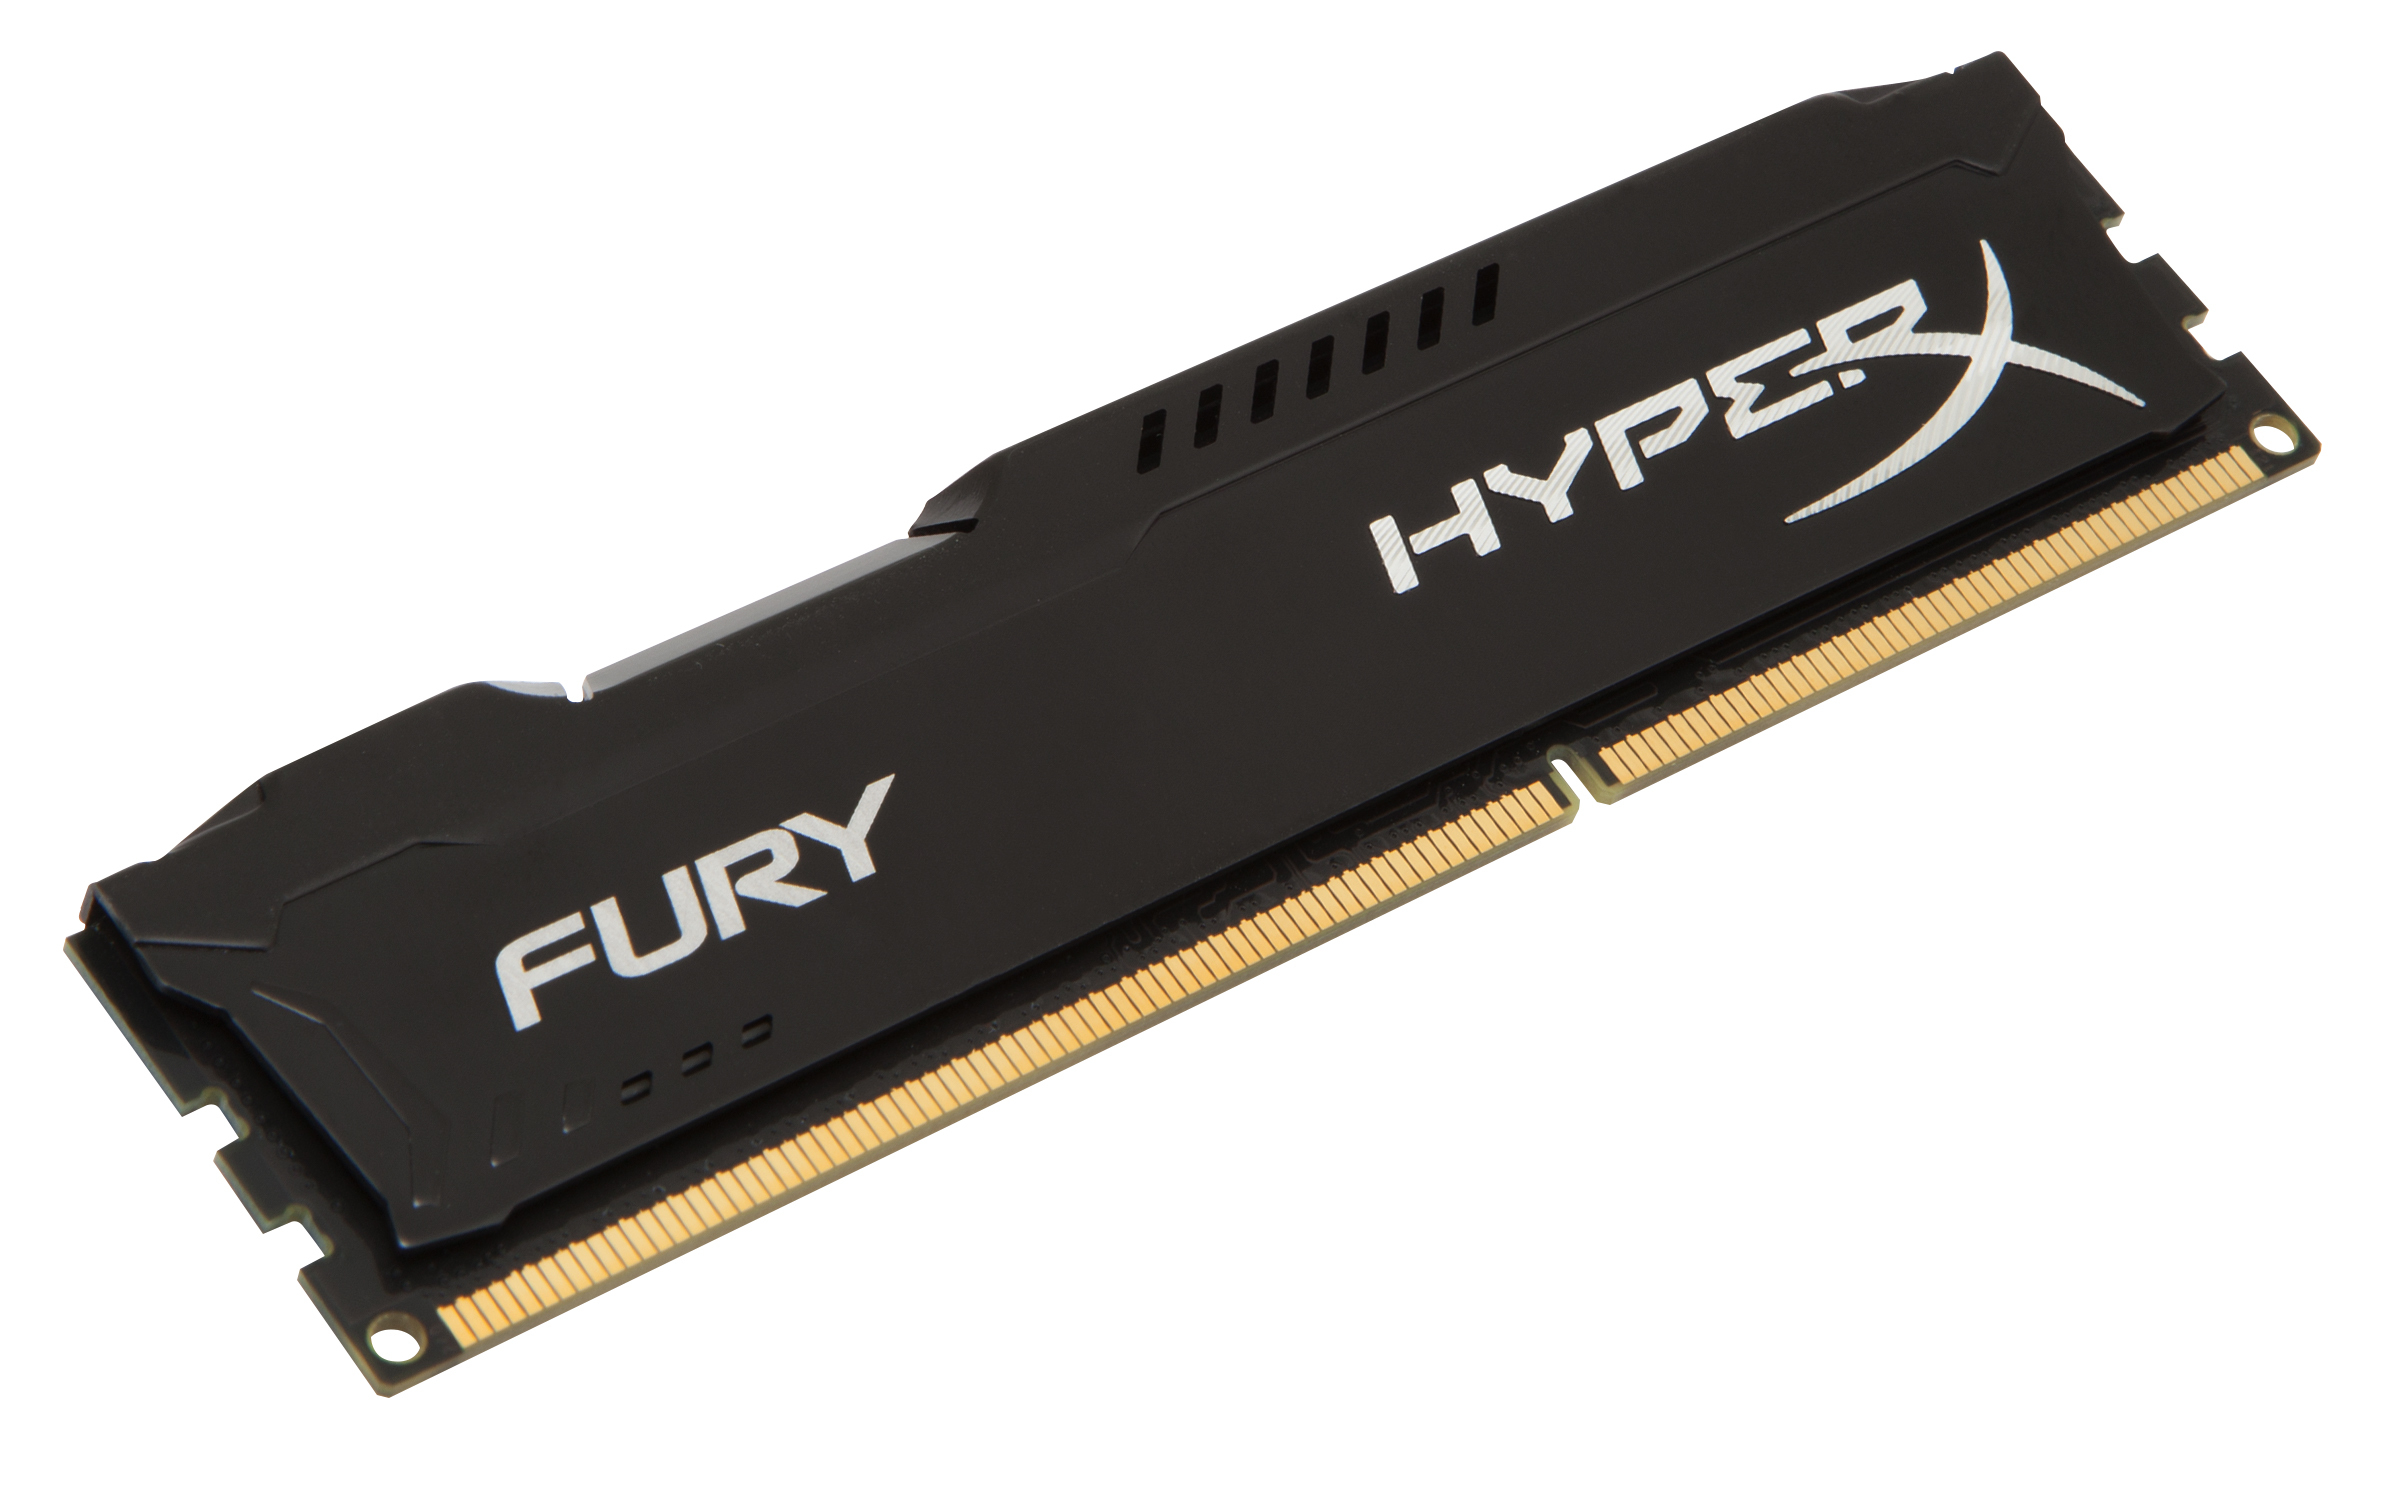 4GB 1600MHz DDR3 CL10 DIMM HyperX Fury B